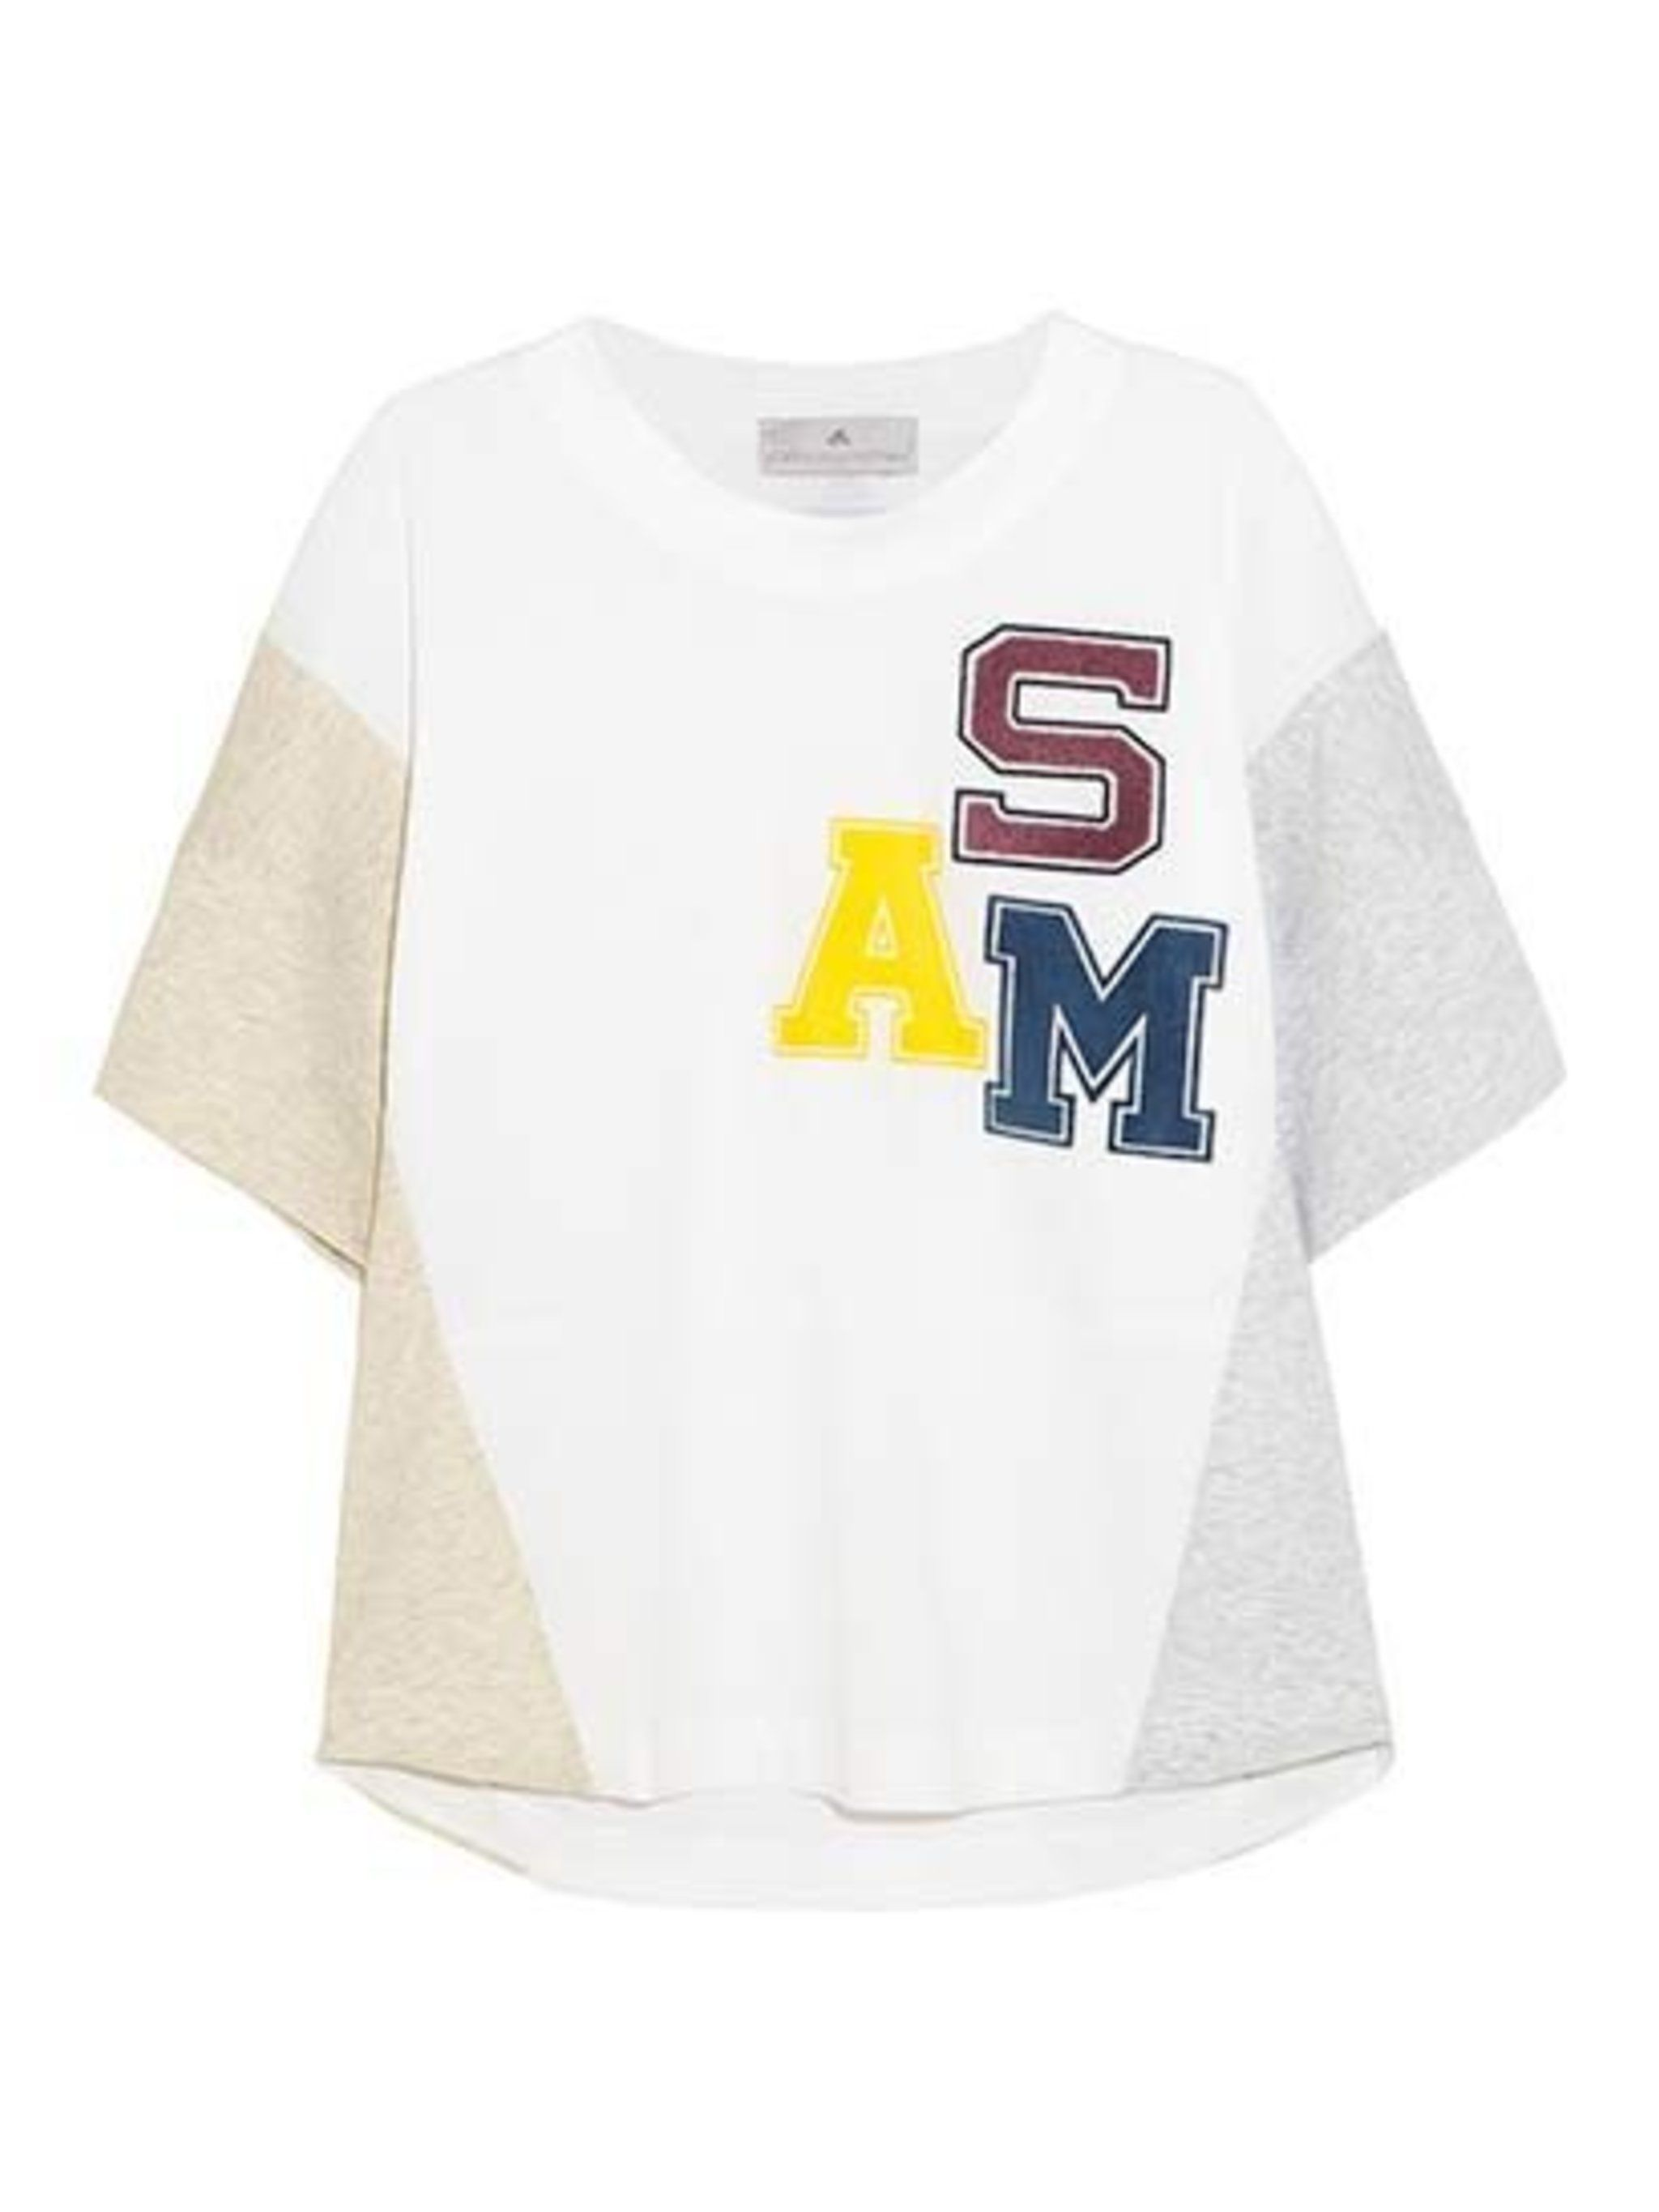 "<p>Adidas by Stella McCartney, £60 at <a href=""http://www.net-a-porter.com/product/405798/Adidas_by_Stella_McCartney/appliqued-cotton-jersey-t-shirt"">Net-a-Porter</a>.</p>"